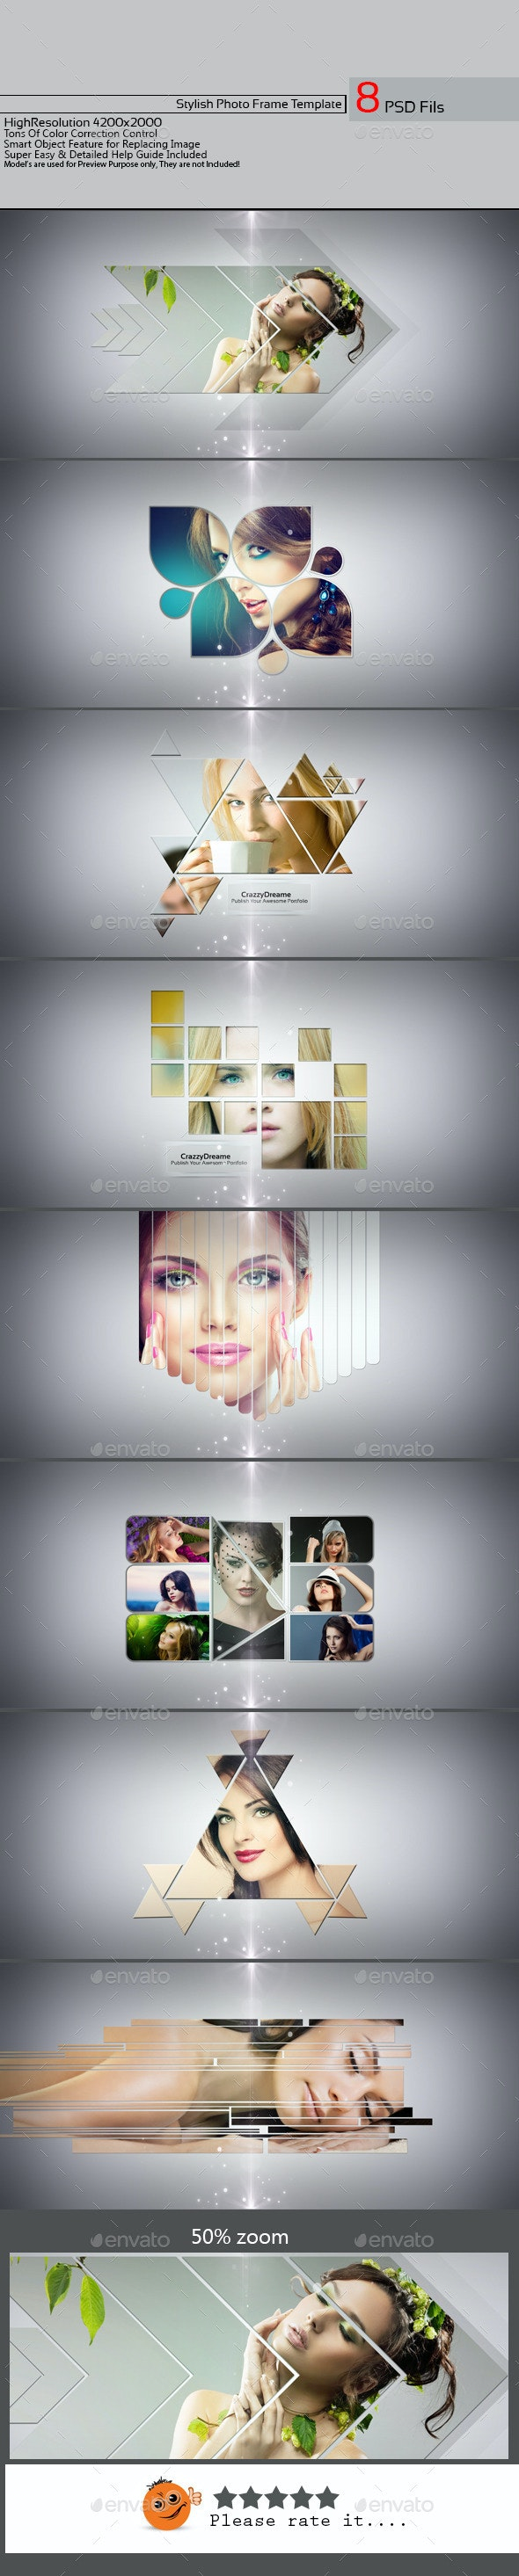 Stylish Photo Frame Template v01 - Photo Templates Graphics